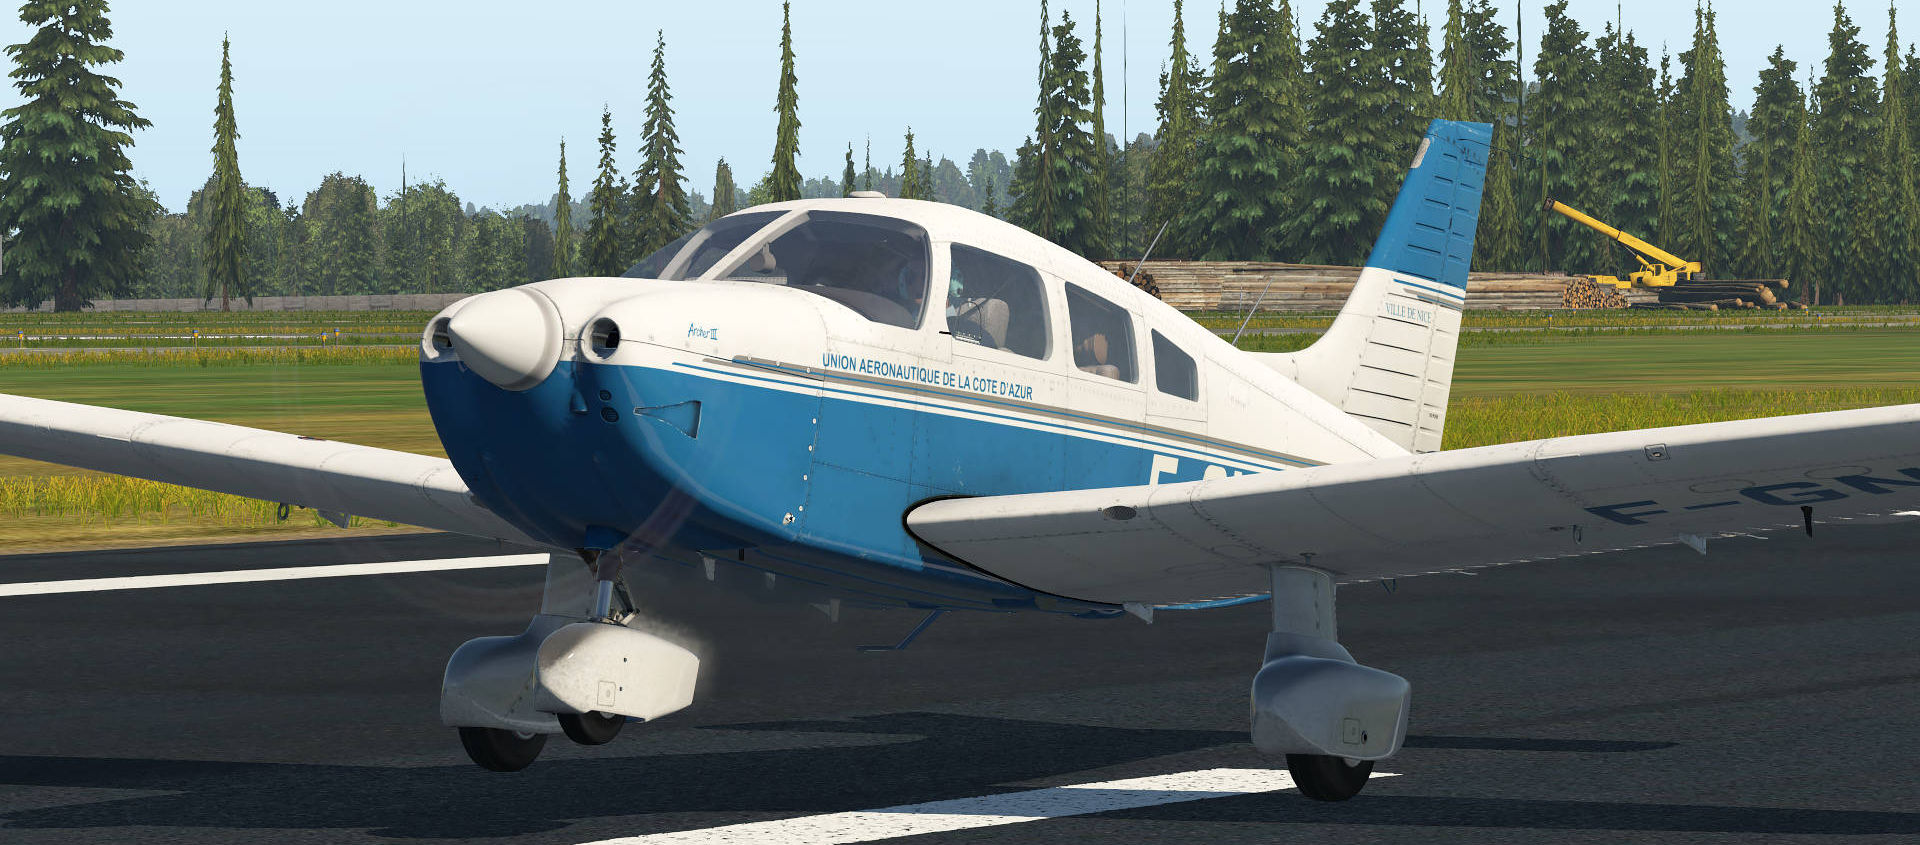 Just Flight PA-28-181 Archer III X-Plane 11 Release